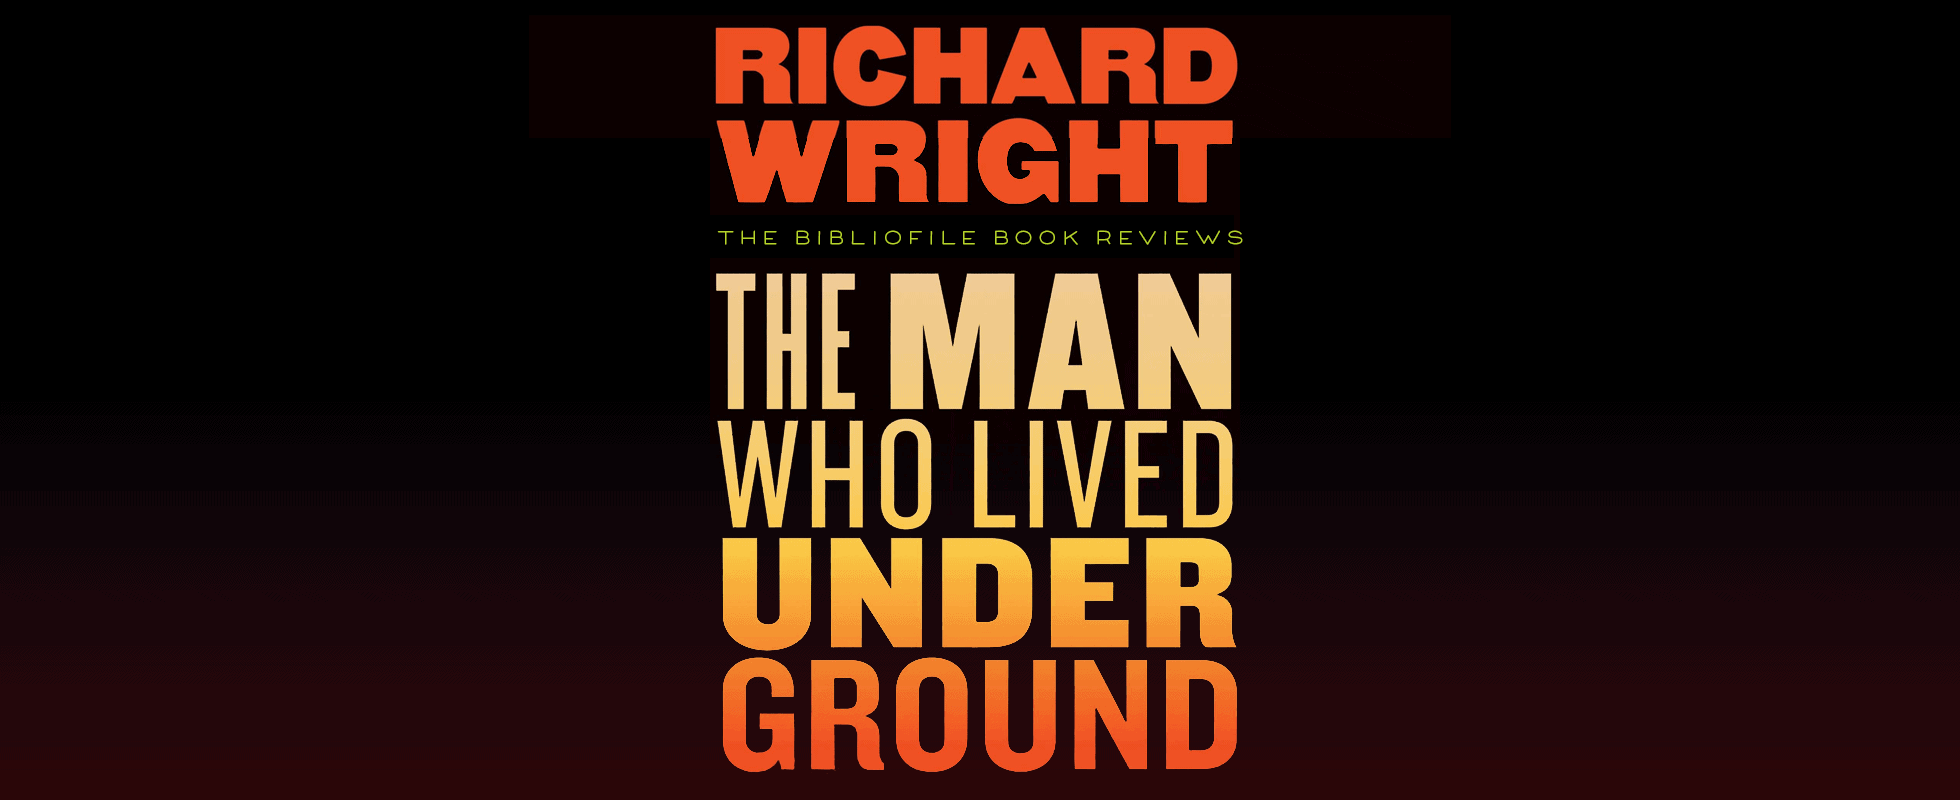 the man who lived underground by richard wright book summary synopsis recap plot review